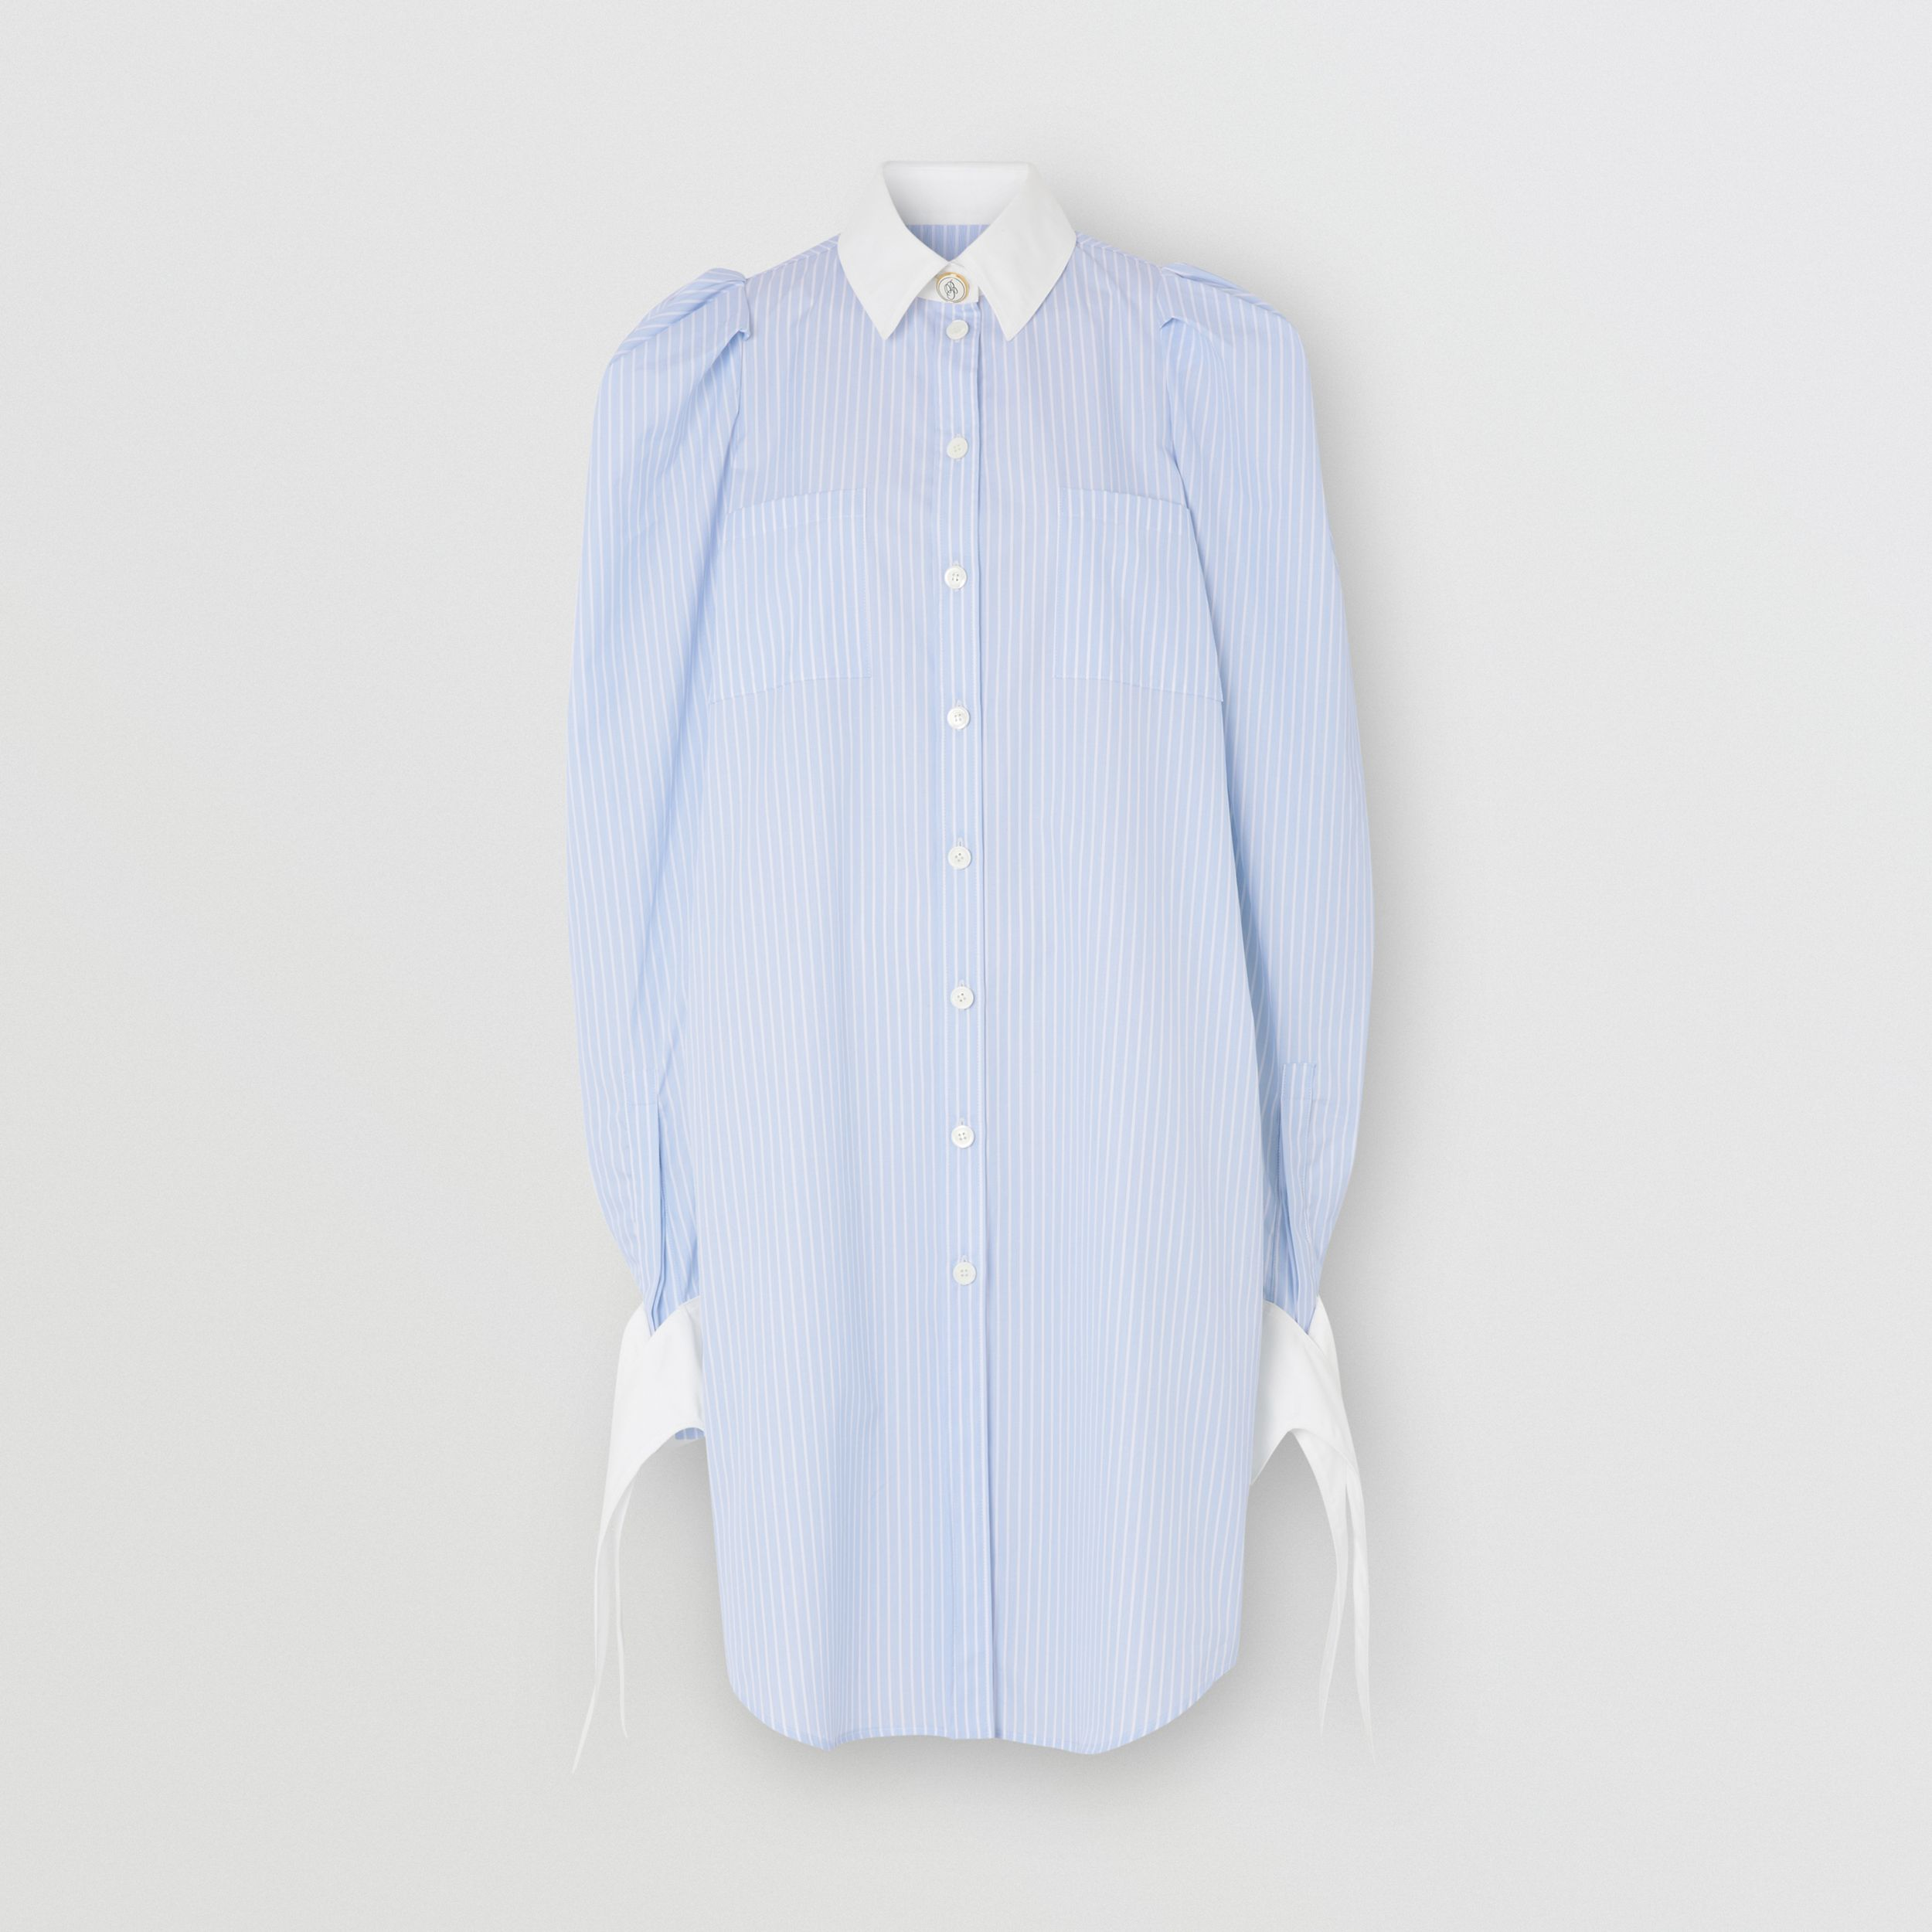 Striped Cotton Poplin Shirt Dress in Pale Blue - Women | Burberry - 4